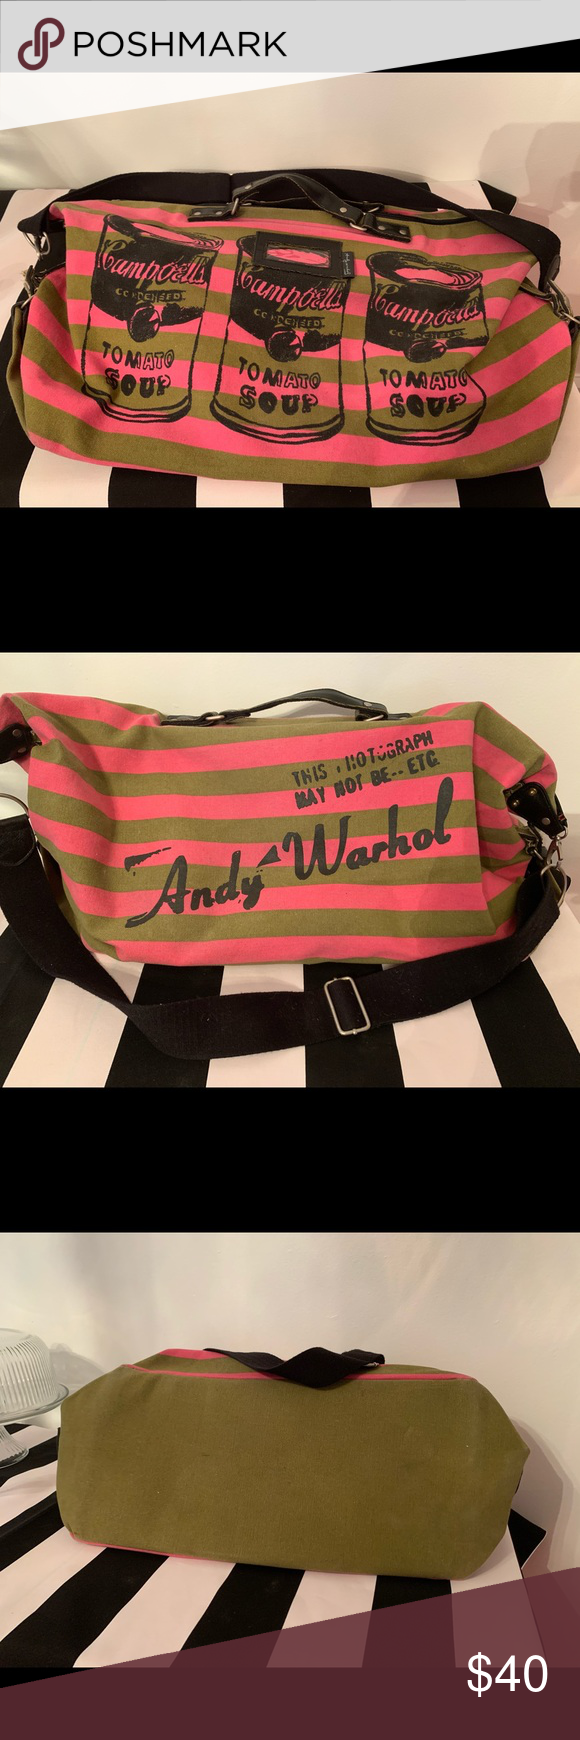 Vintage Andy Warhol Campbell S Soup Travel Bag In 2020 Andy Warhol Campbell Soup Bags